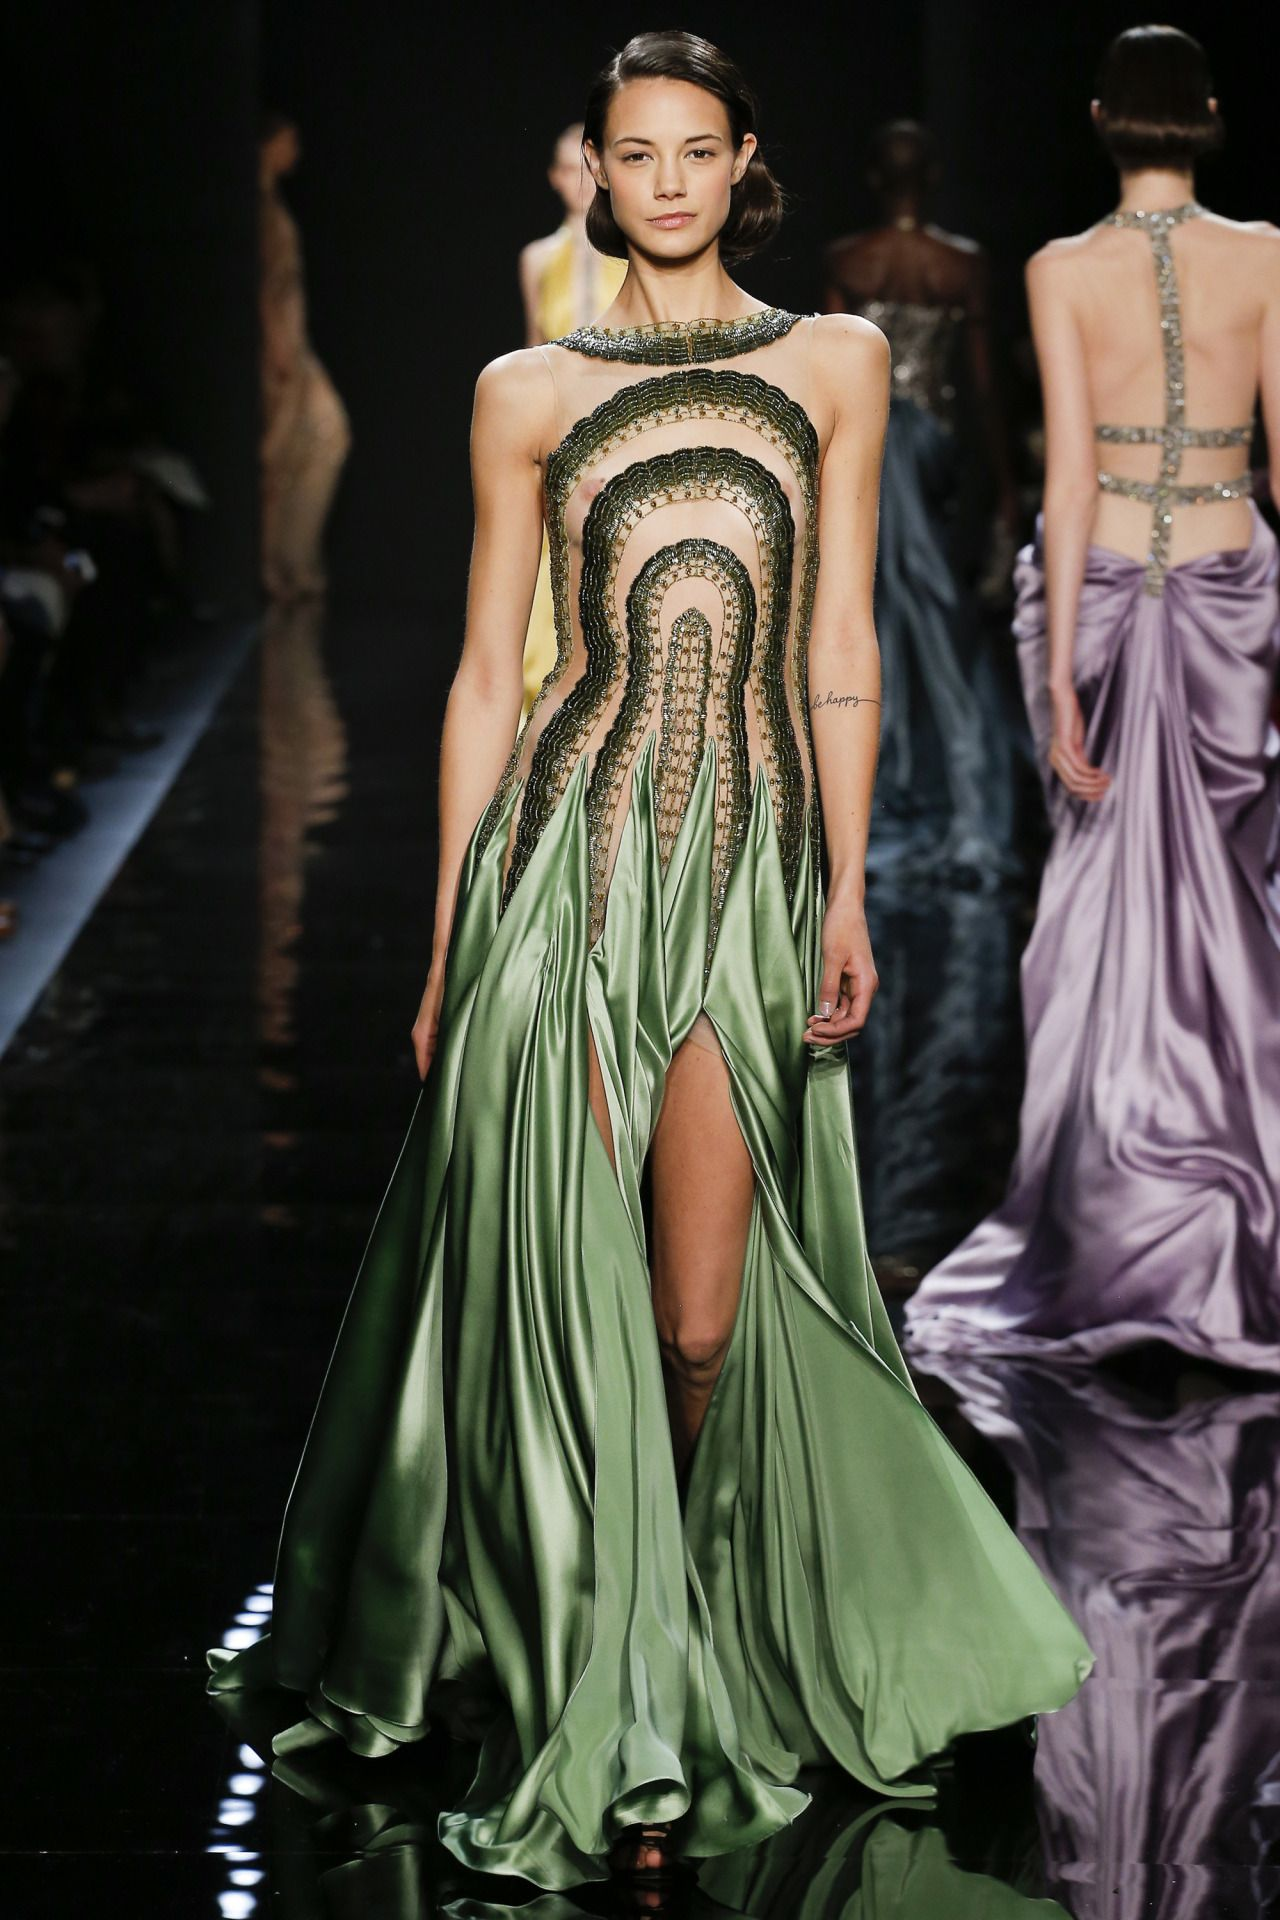 Andrea Berg Oops green scene | haute couture & vintage gowns | fashion